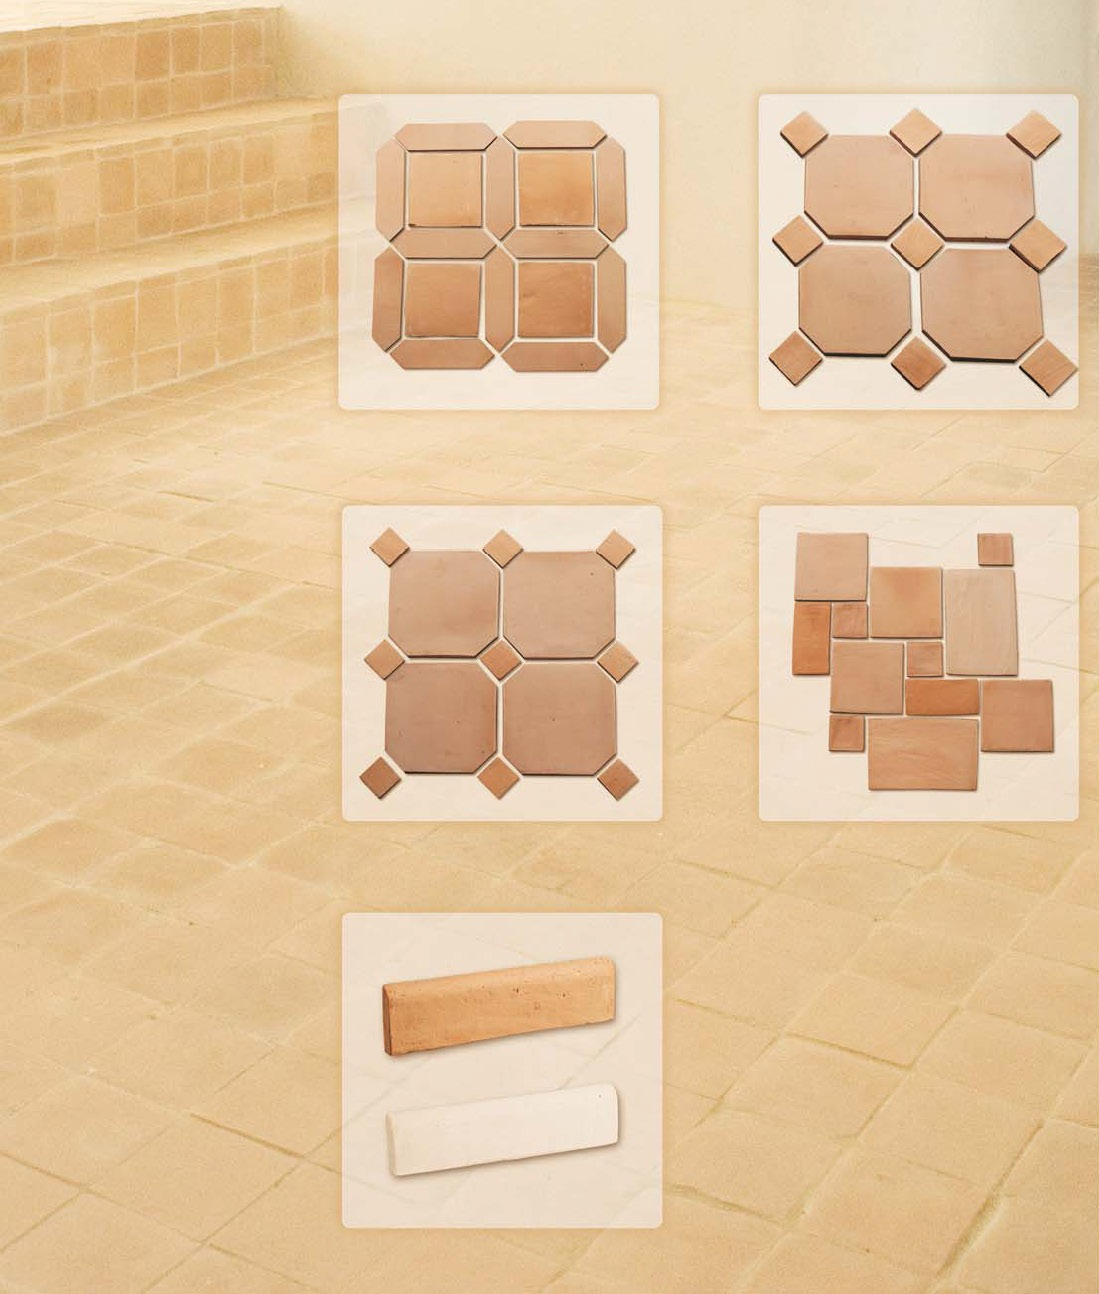 Pak clay flooring tiles designs ideas pictures remodel for Clay tile designs